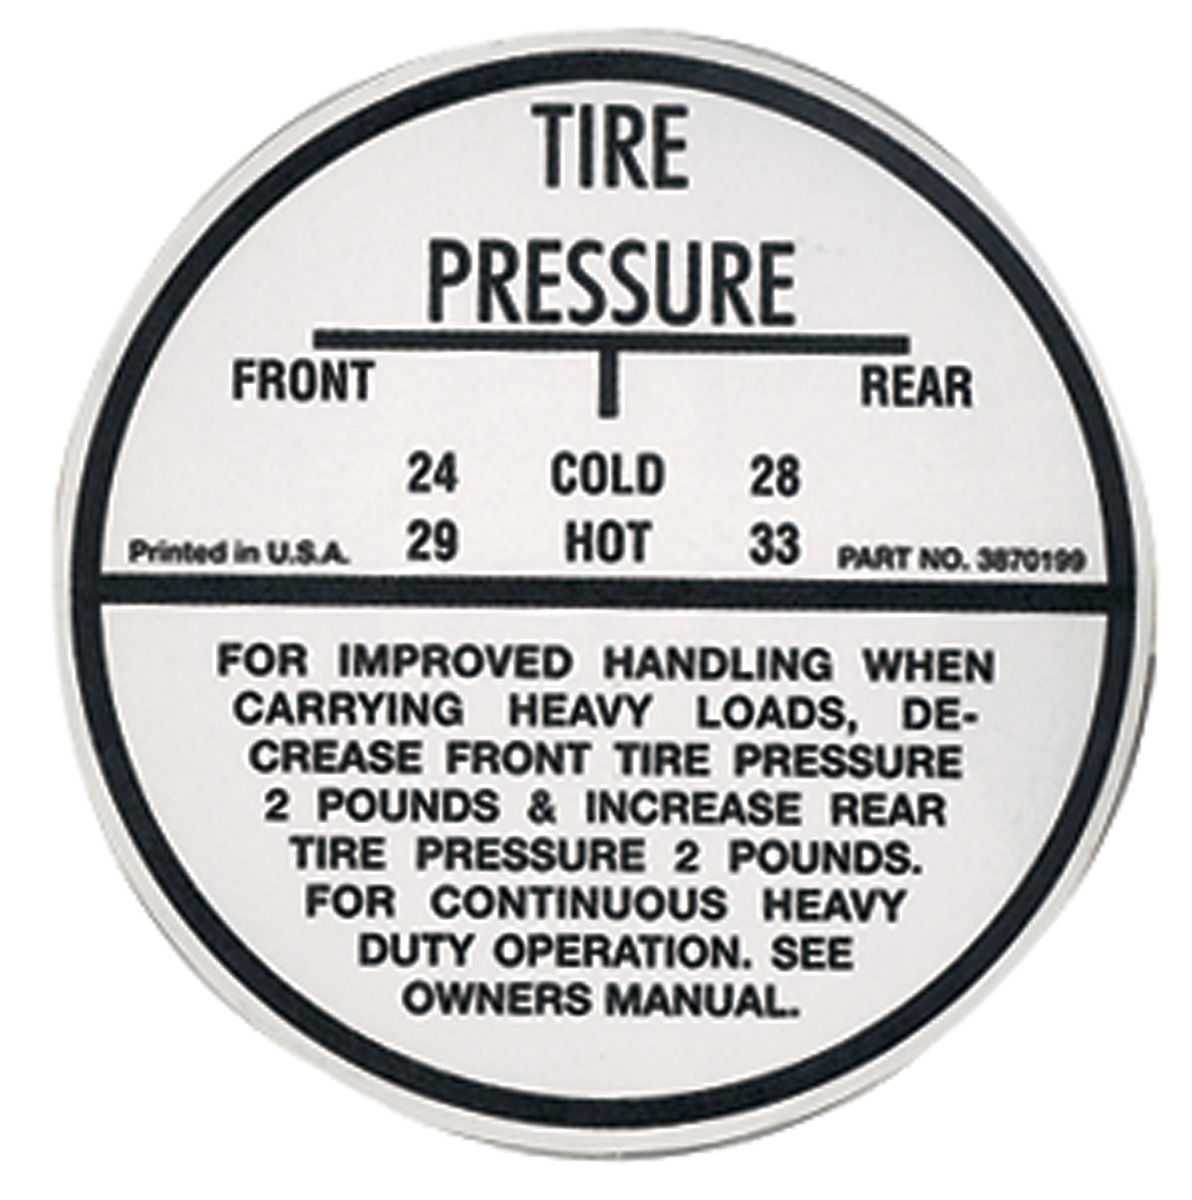 Decal, 64-65 Chevelle/El Camino, Tire Pressure